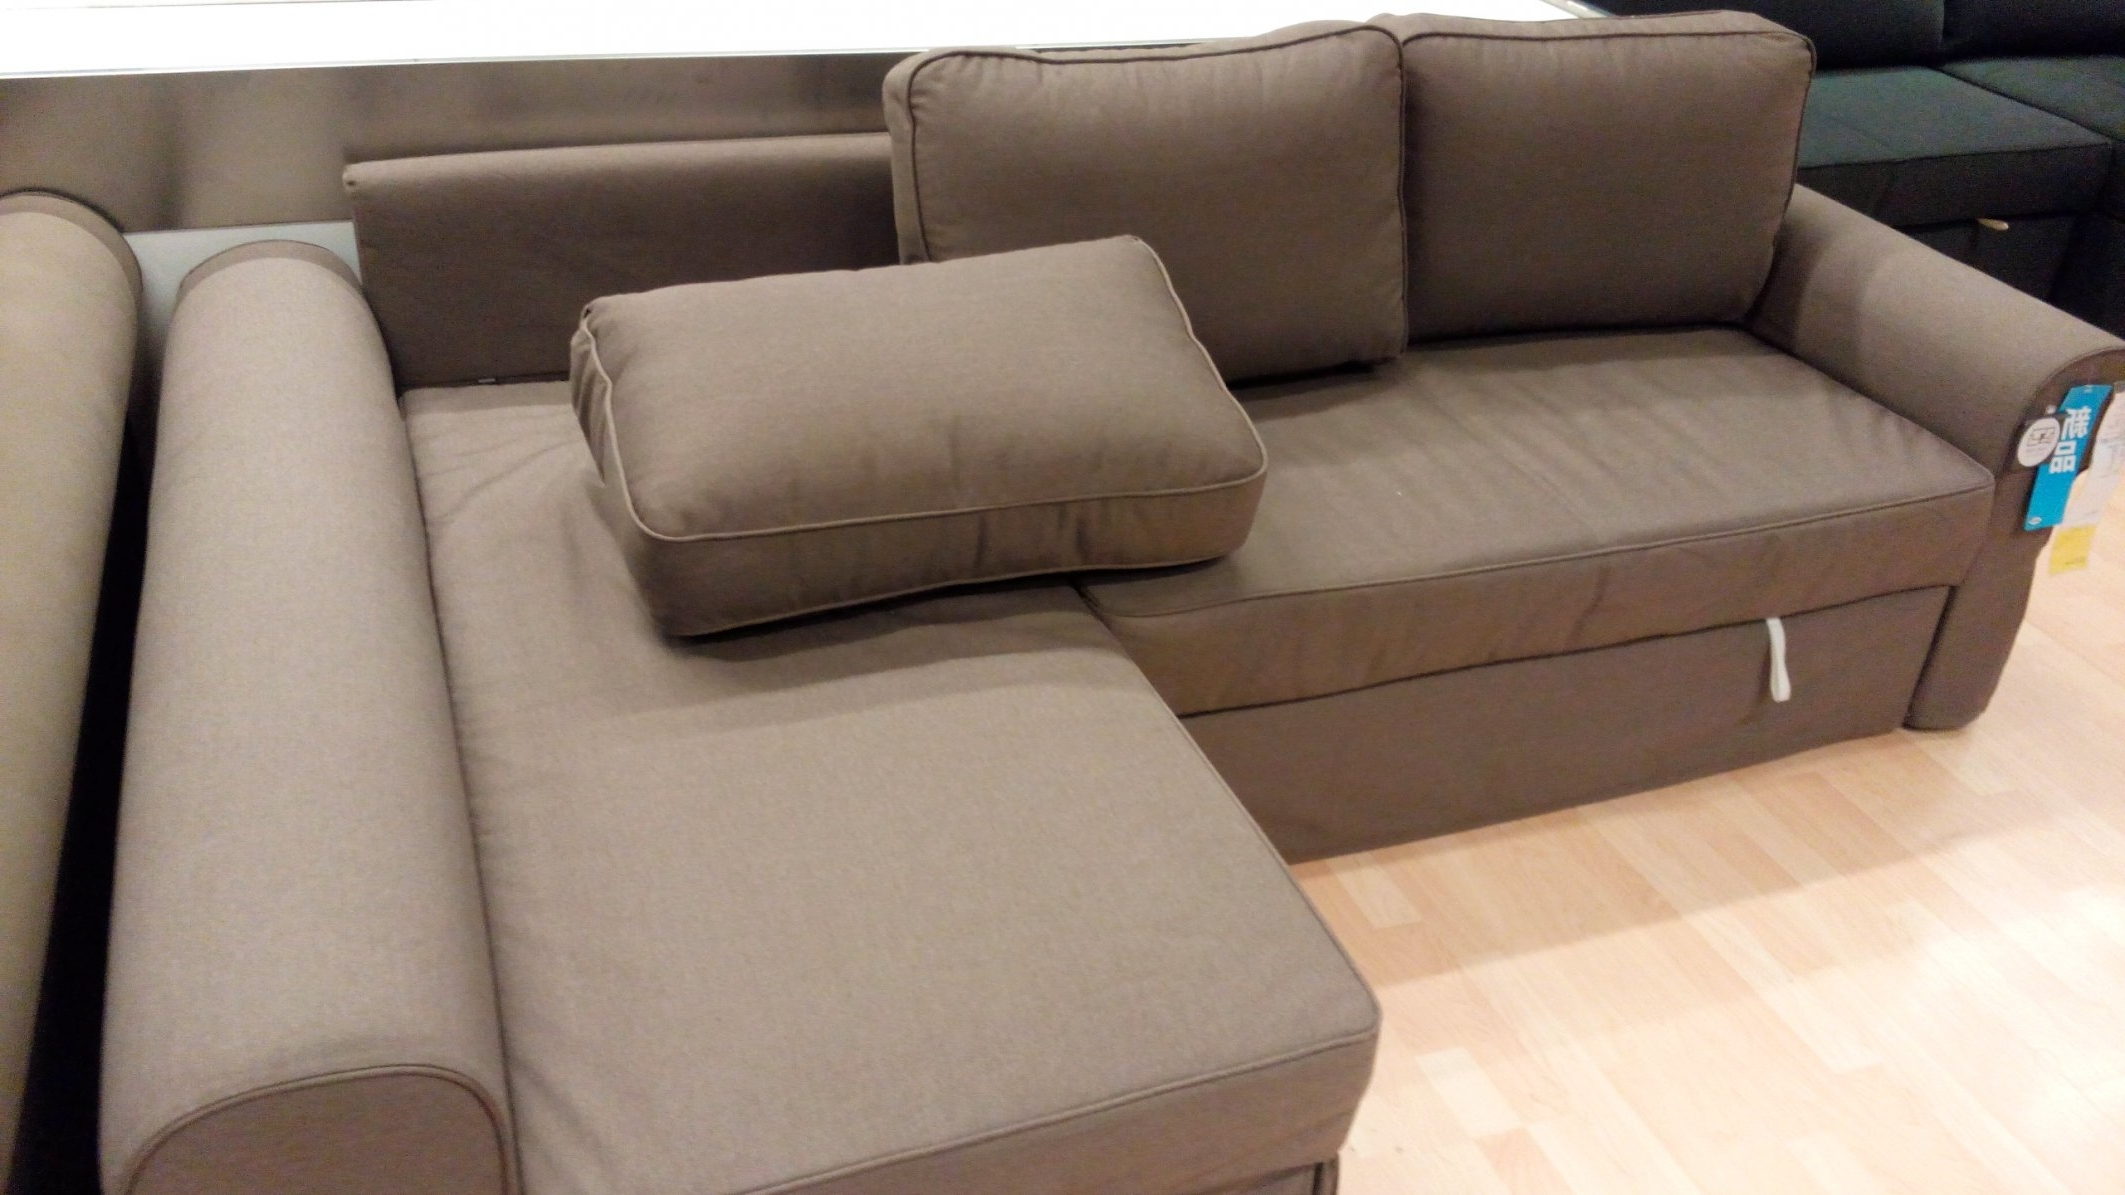 Manstad Sofas Within Widely Used Manstad Sofa Bed Dimensions #2 Ikea Backabro Sofa Bed With Chaise (View 12 of 15)